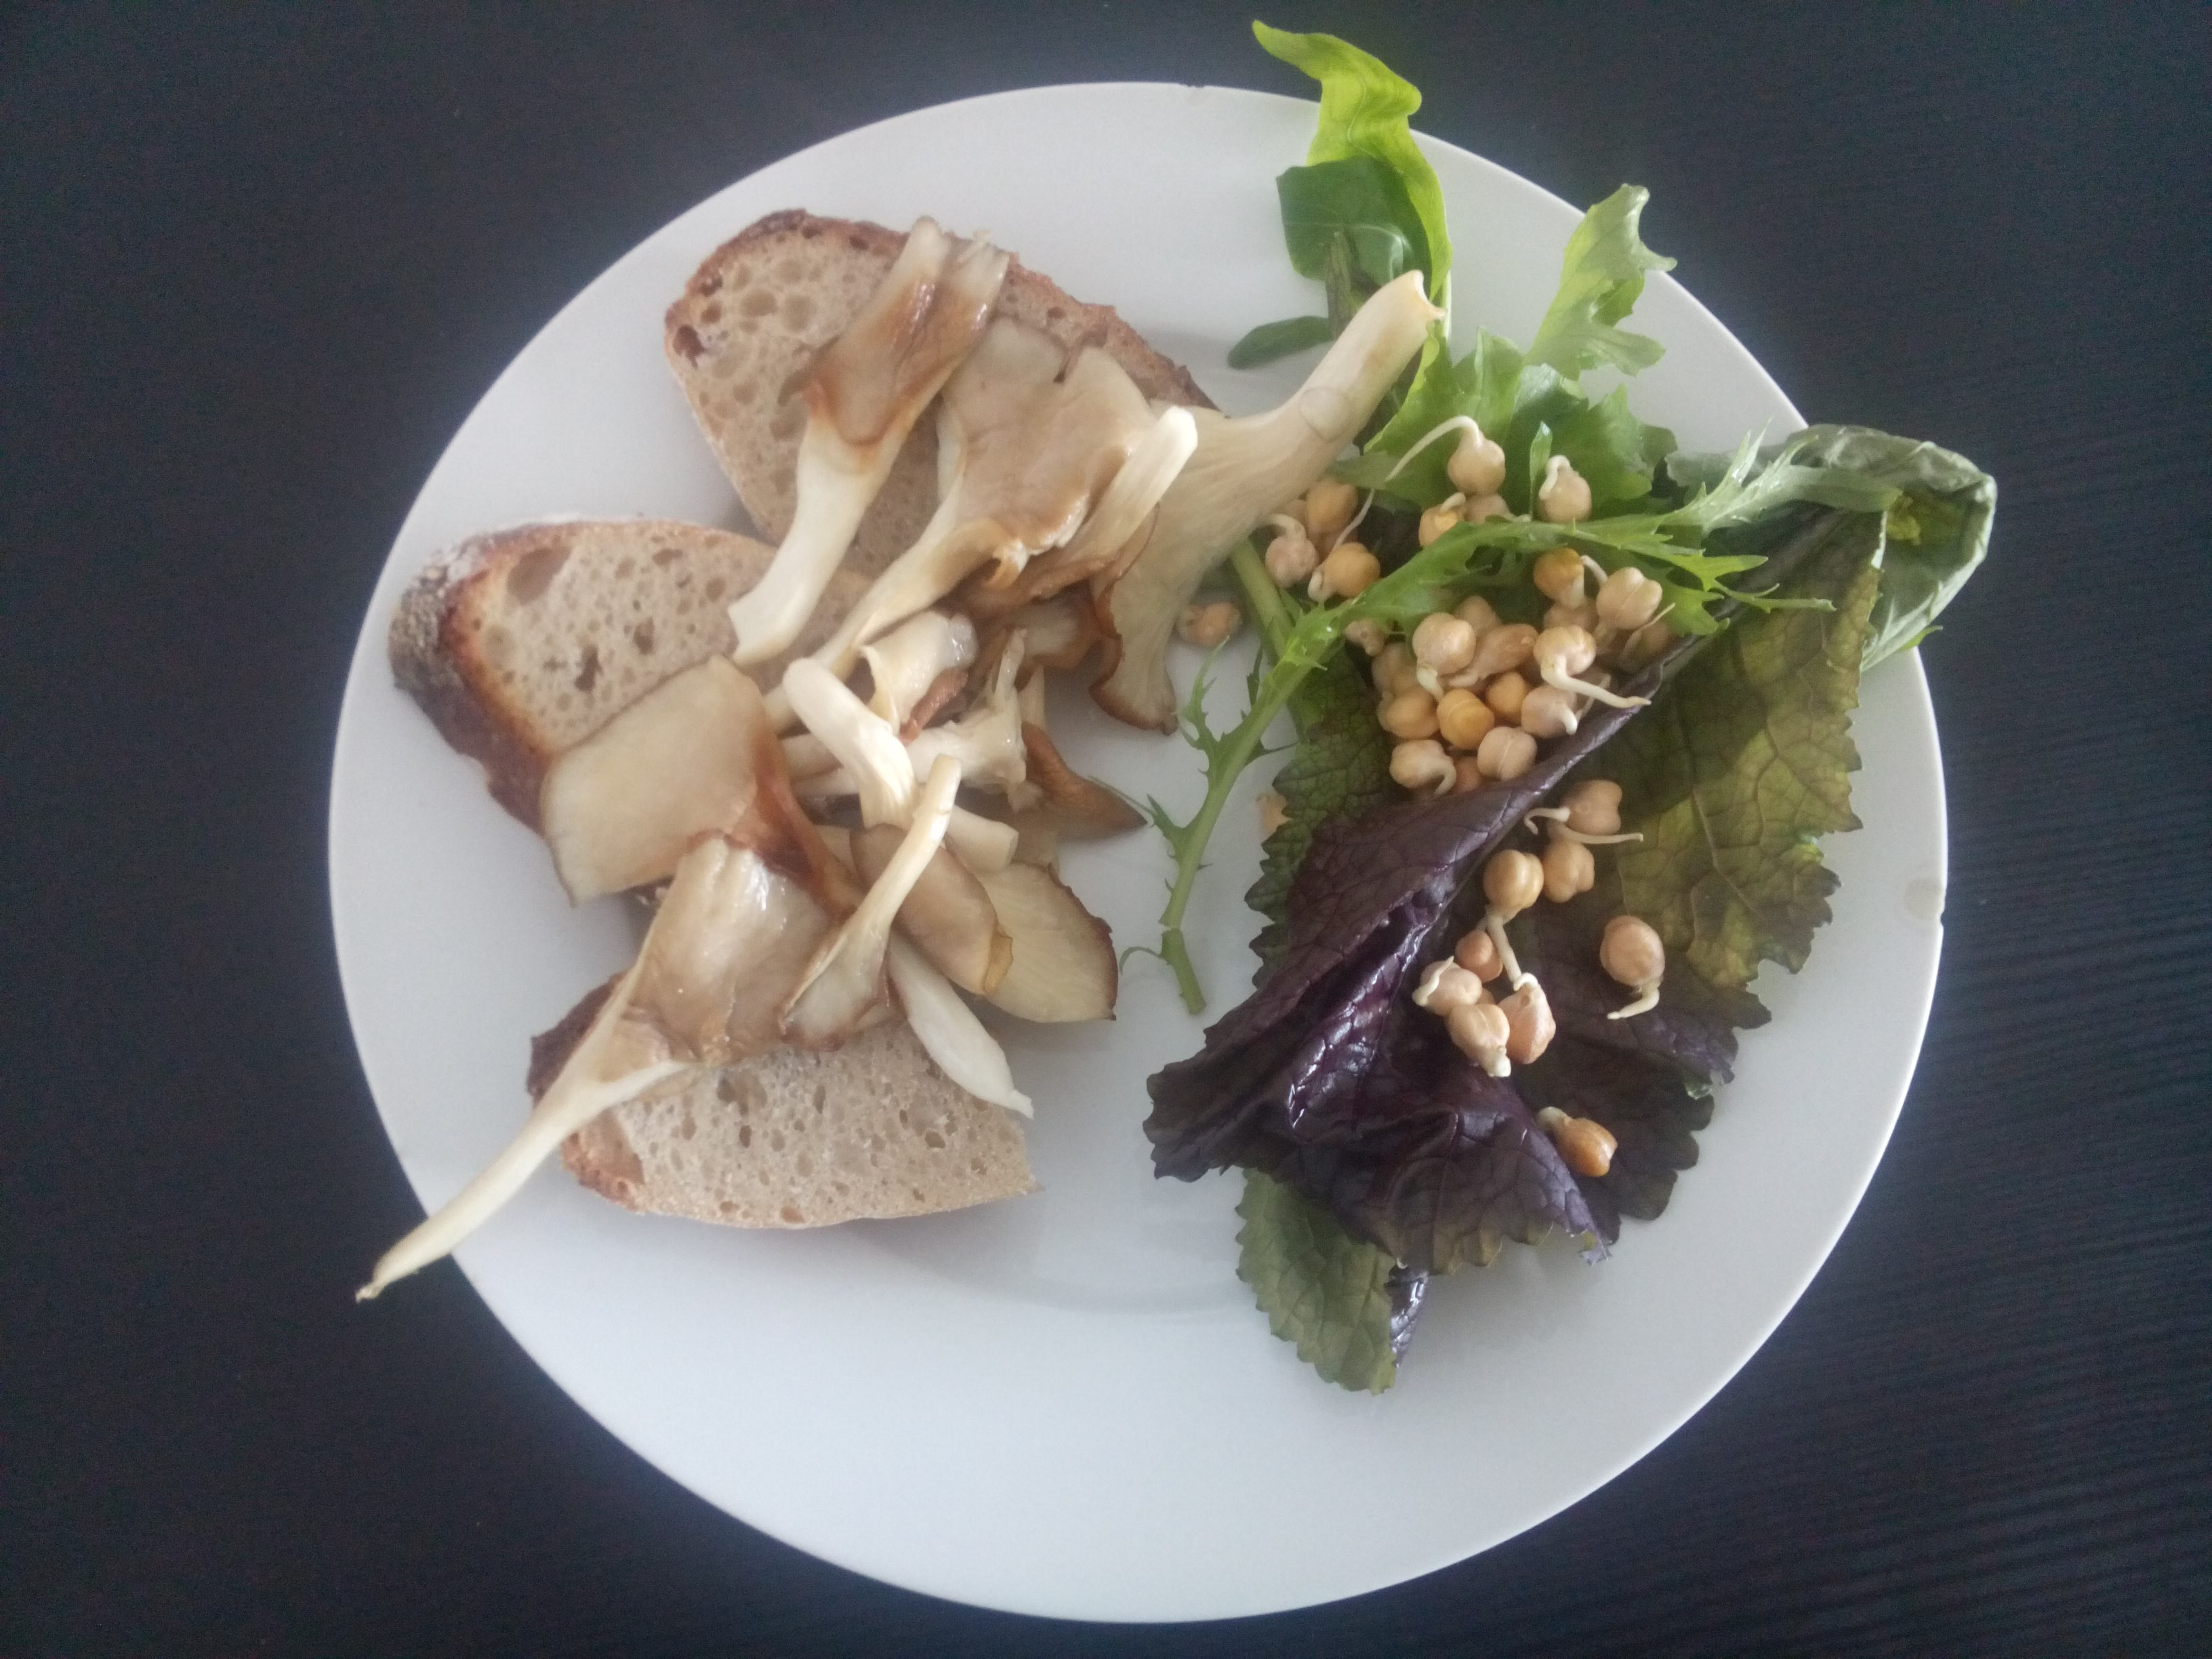 A white plate with bread under golden seared oyster mushrooms beside green and purple leaves with chickpeas